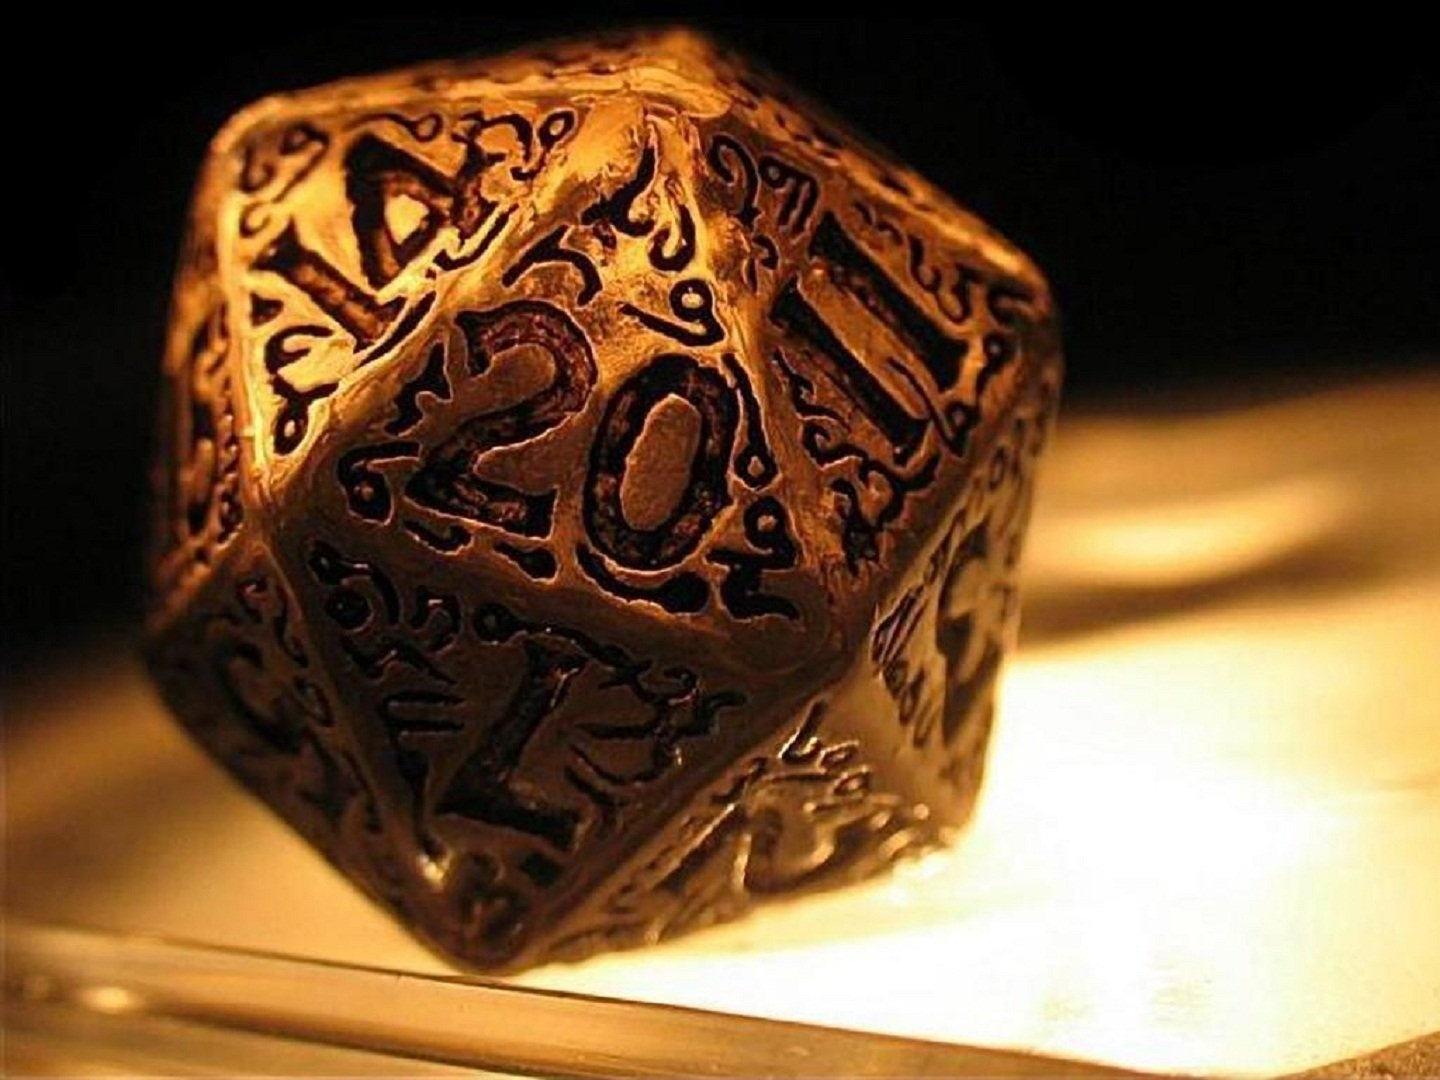 69 dice hd wallpapers | background images - wallpaper abyss